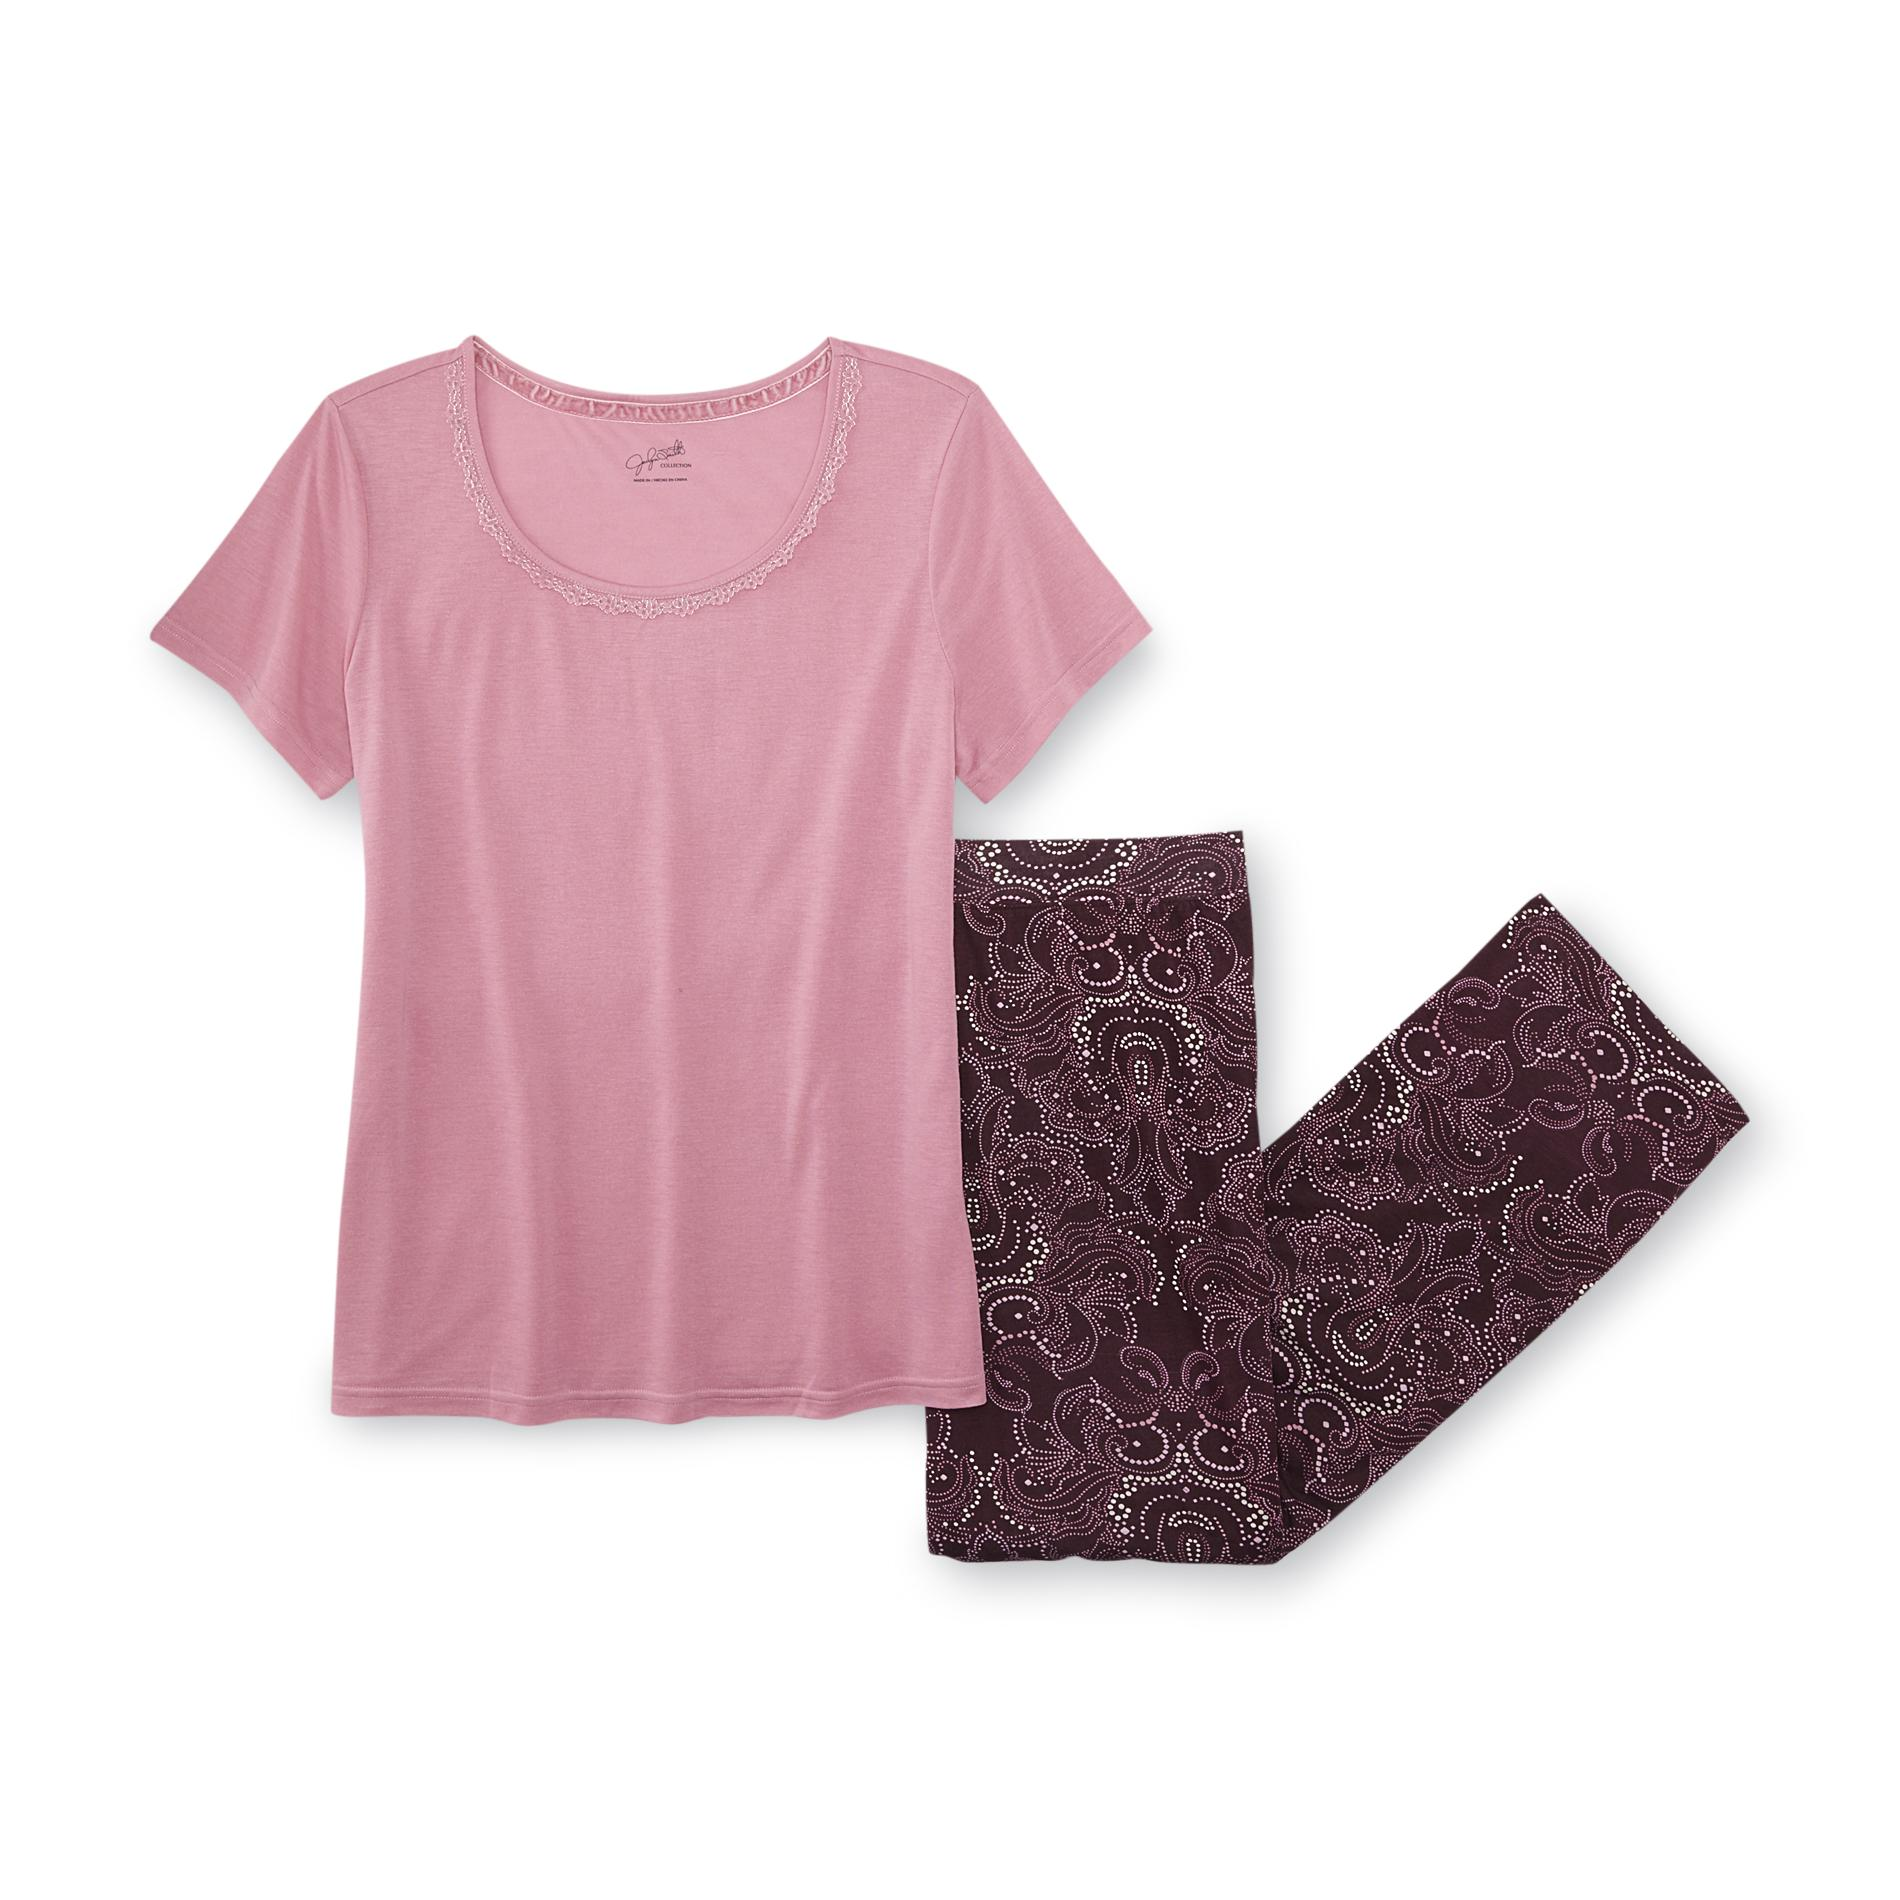 Jaclyn Smith Women' Knit Pajamas - Paisley Clothing Shoes & Jewelry